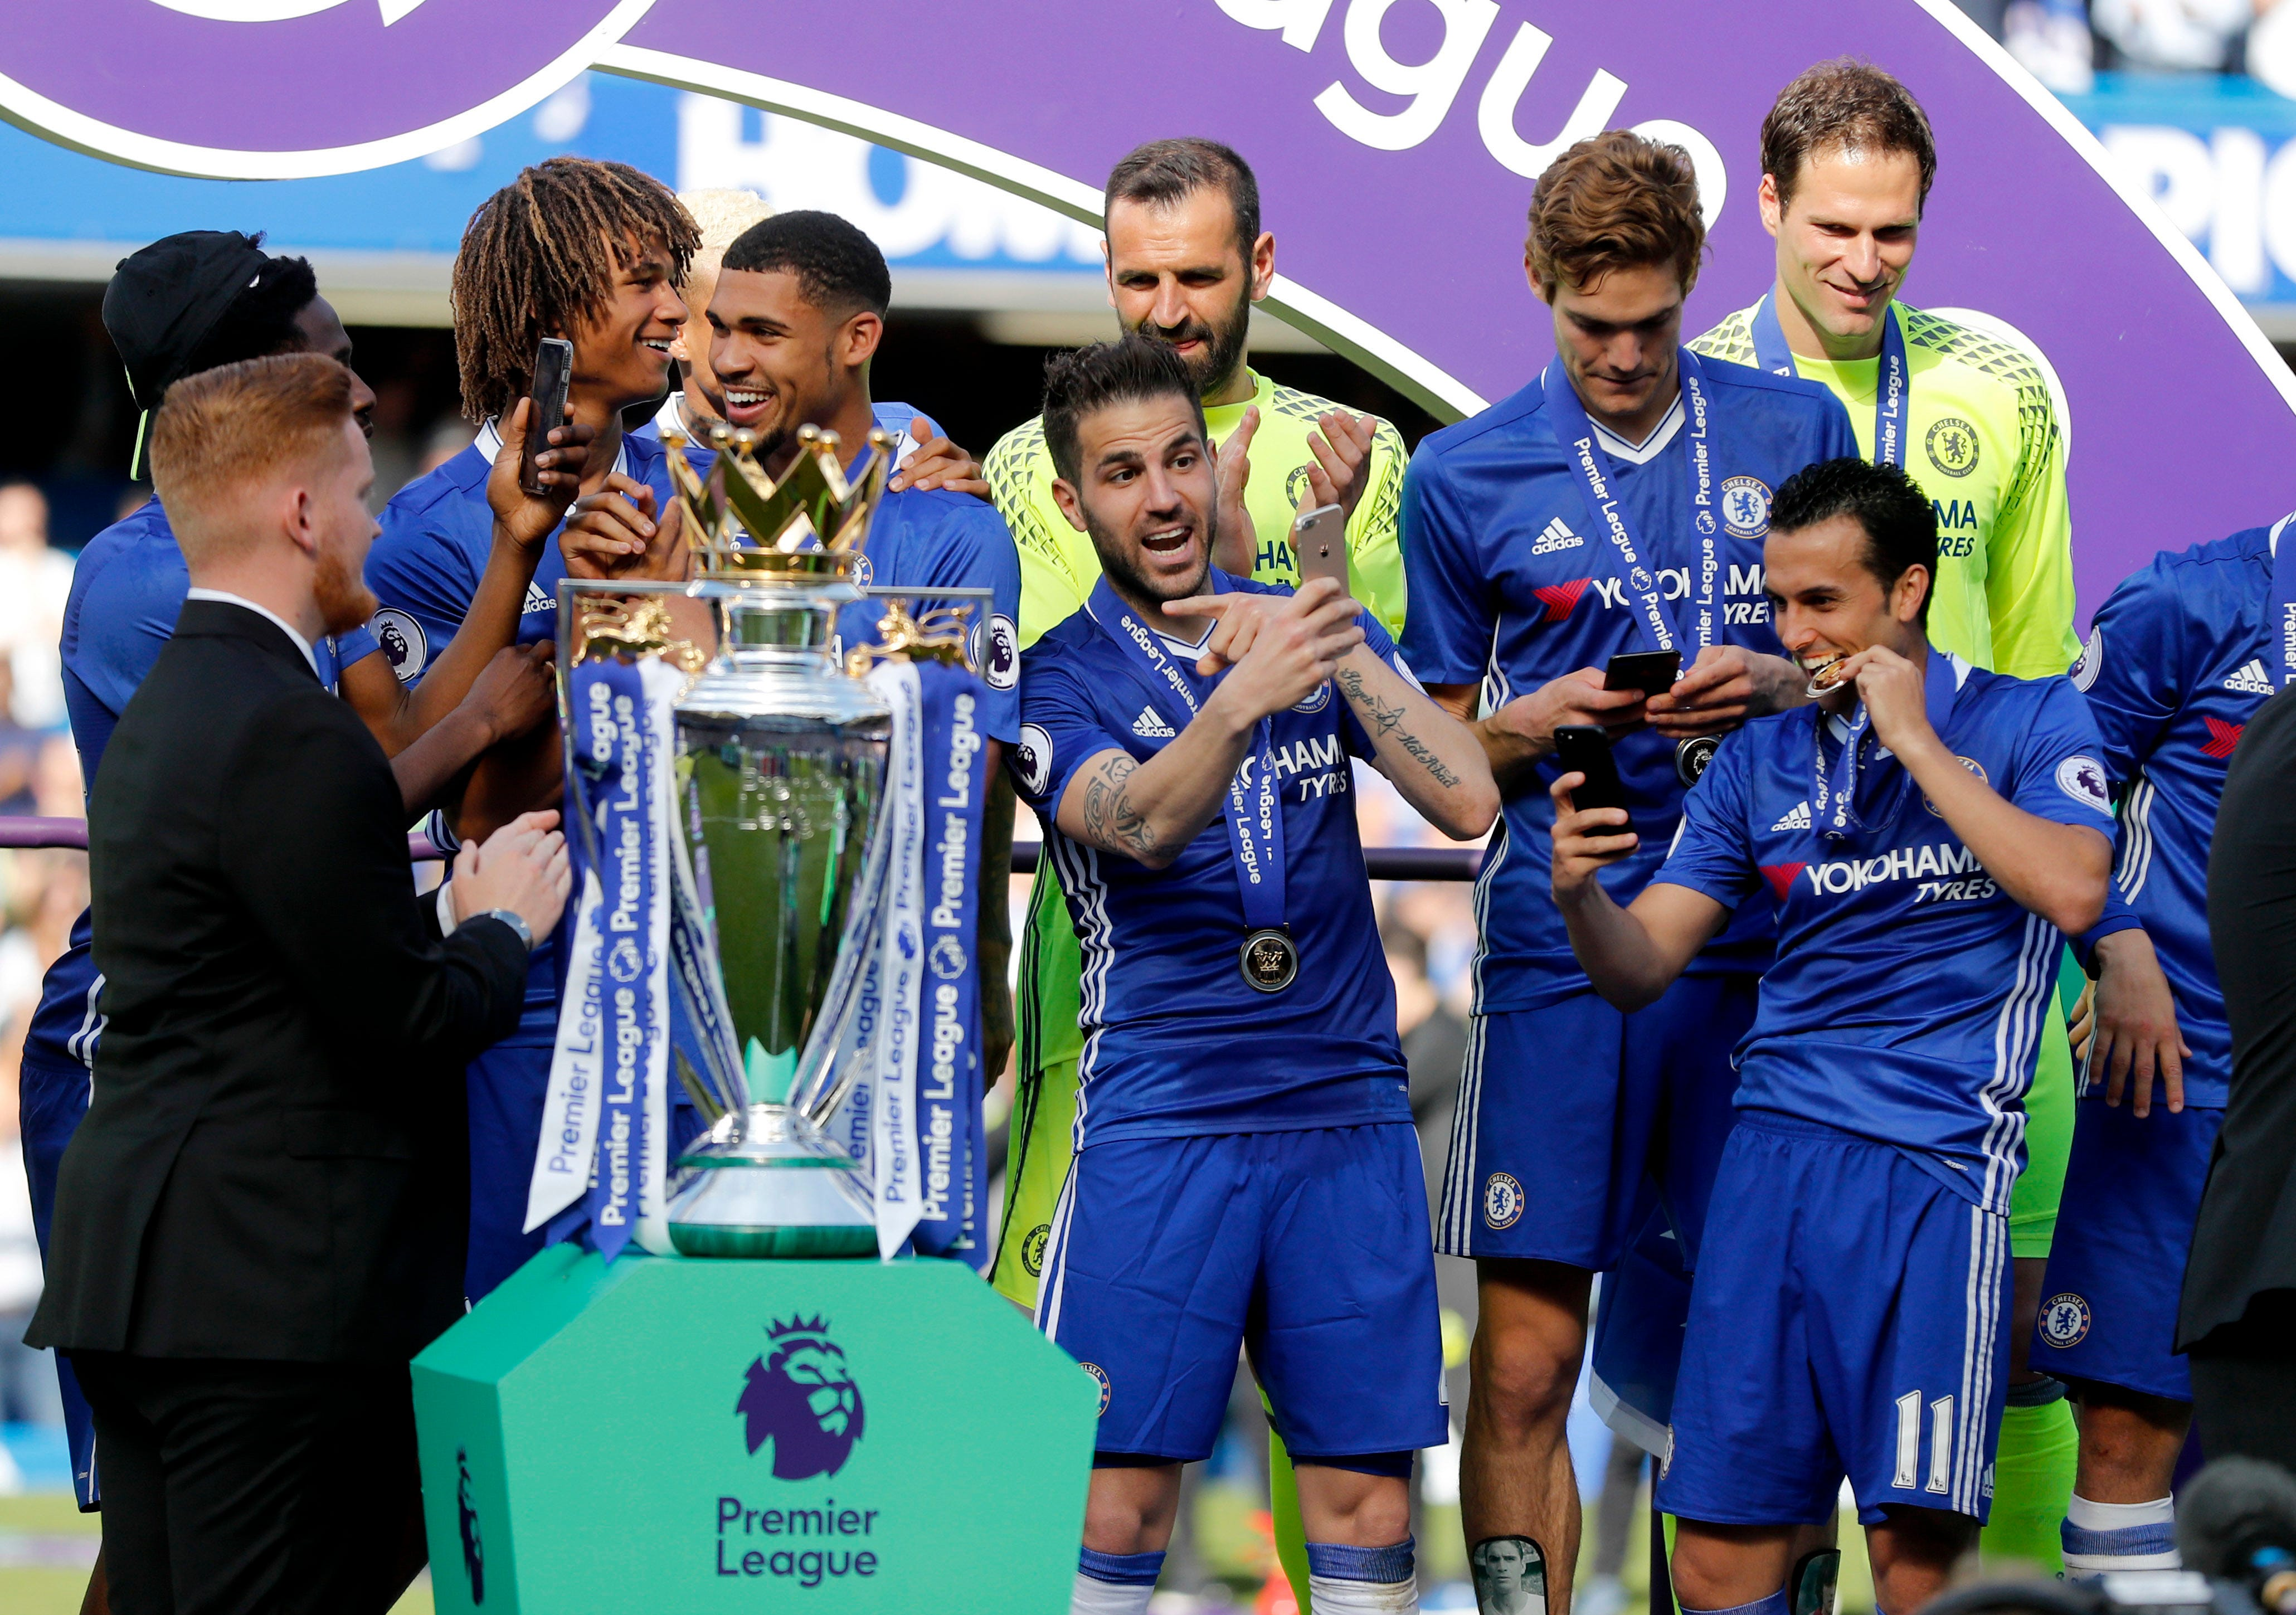 Chelsea celebrates title with 5-1 win over Sunderland